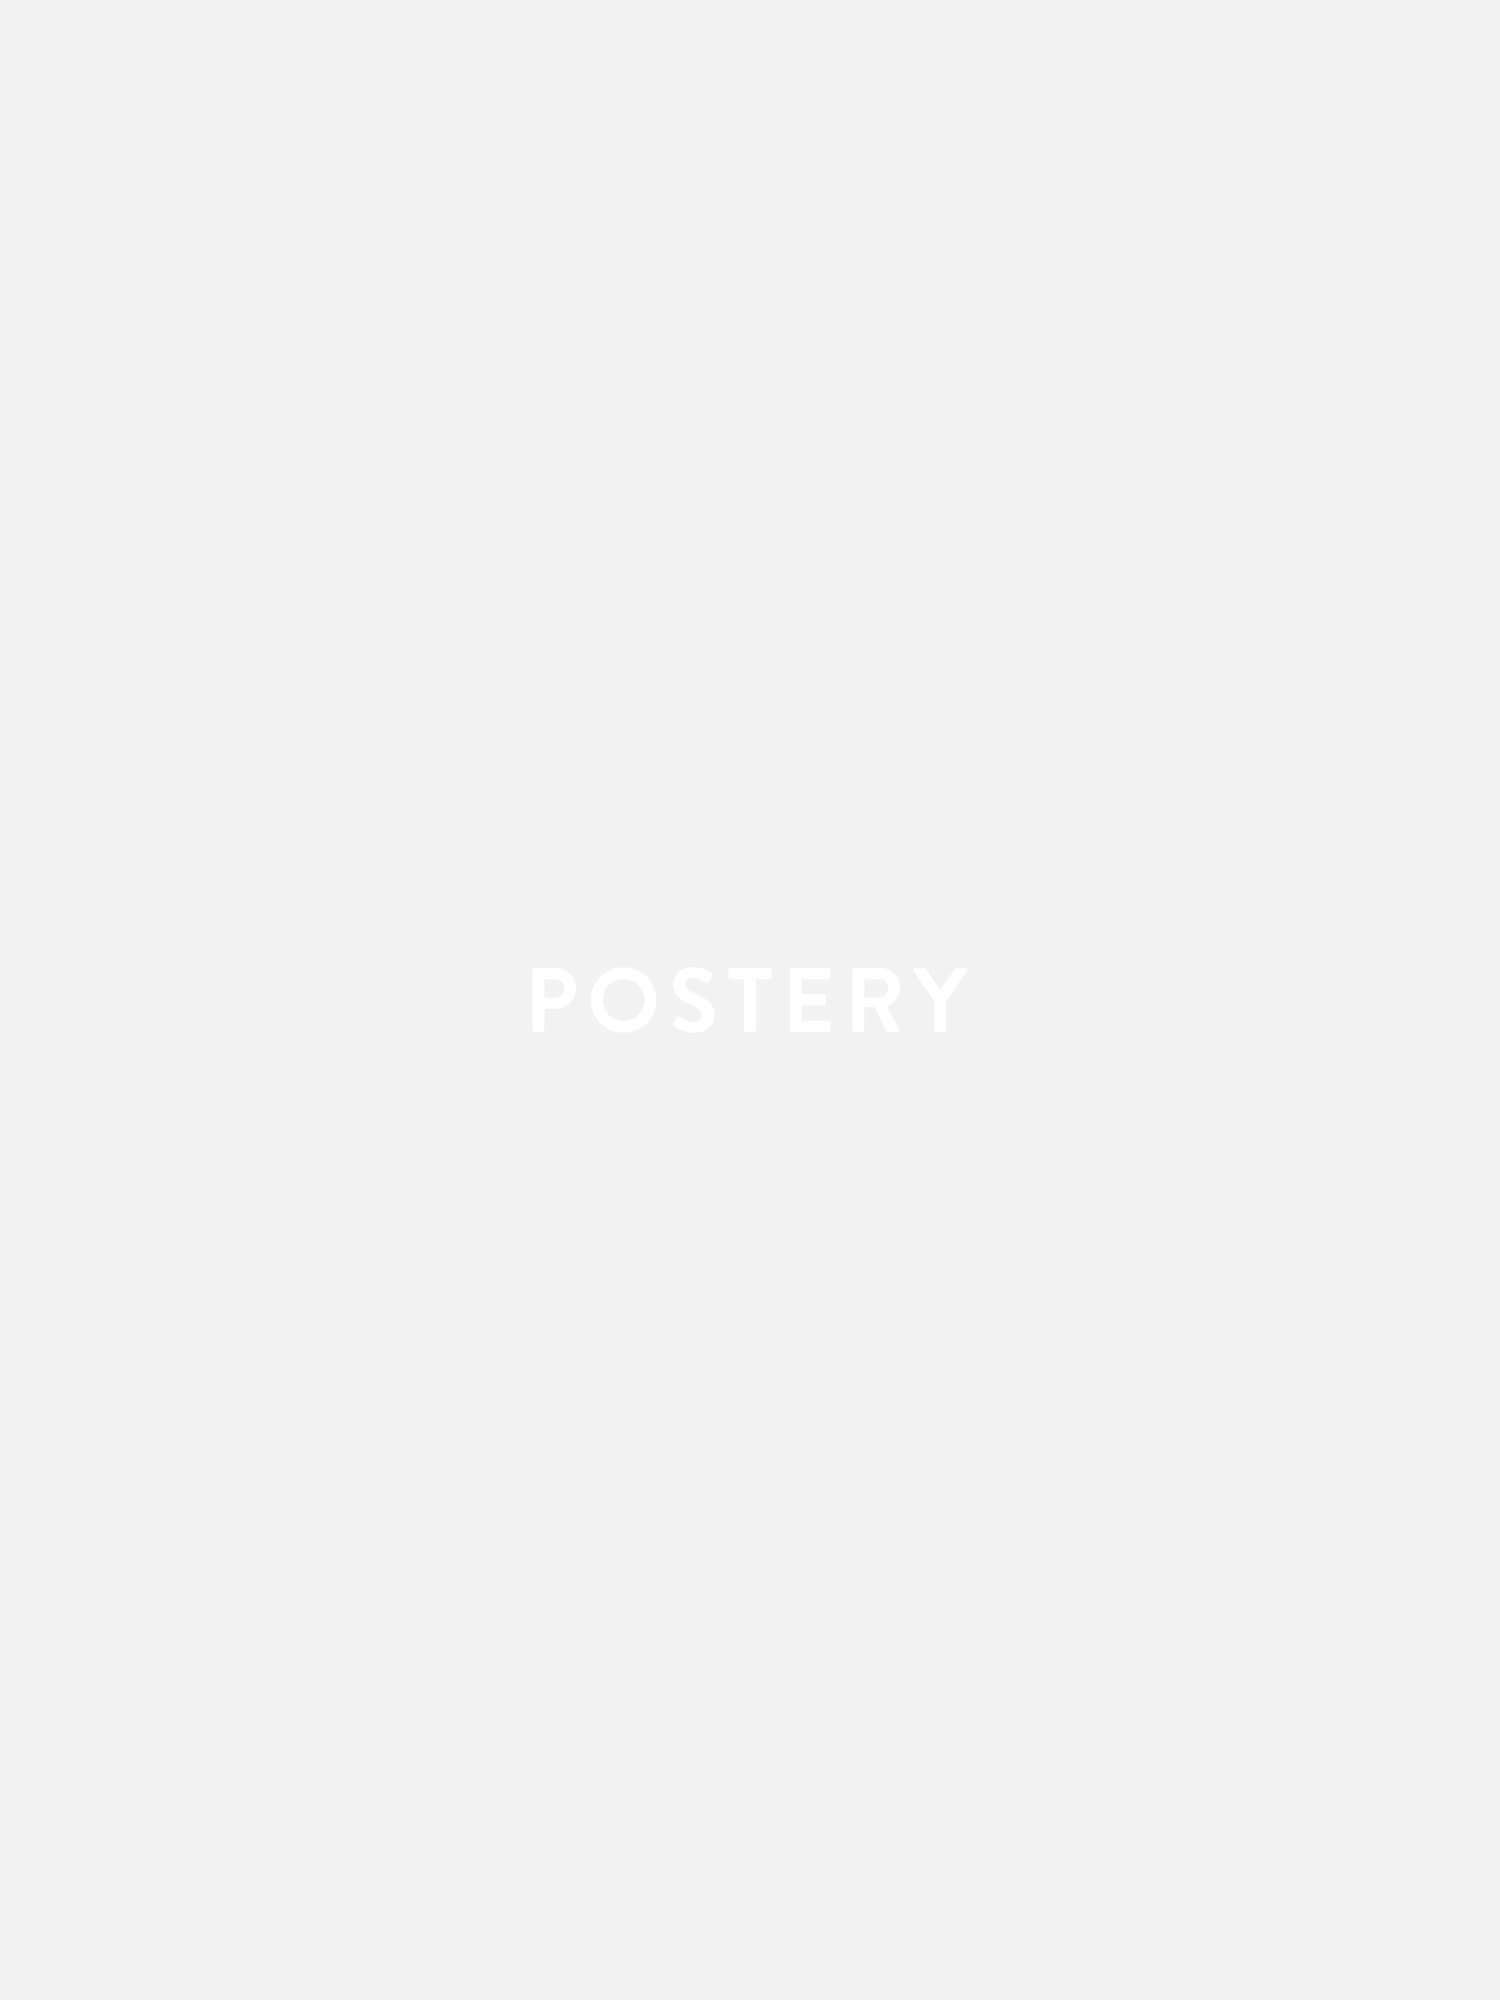 Smart Bunny Poster